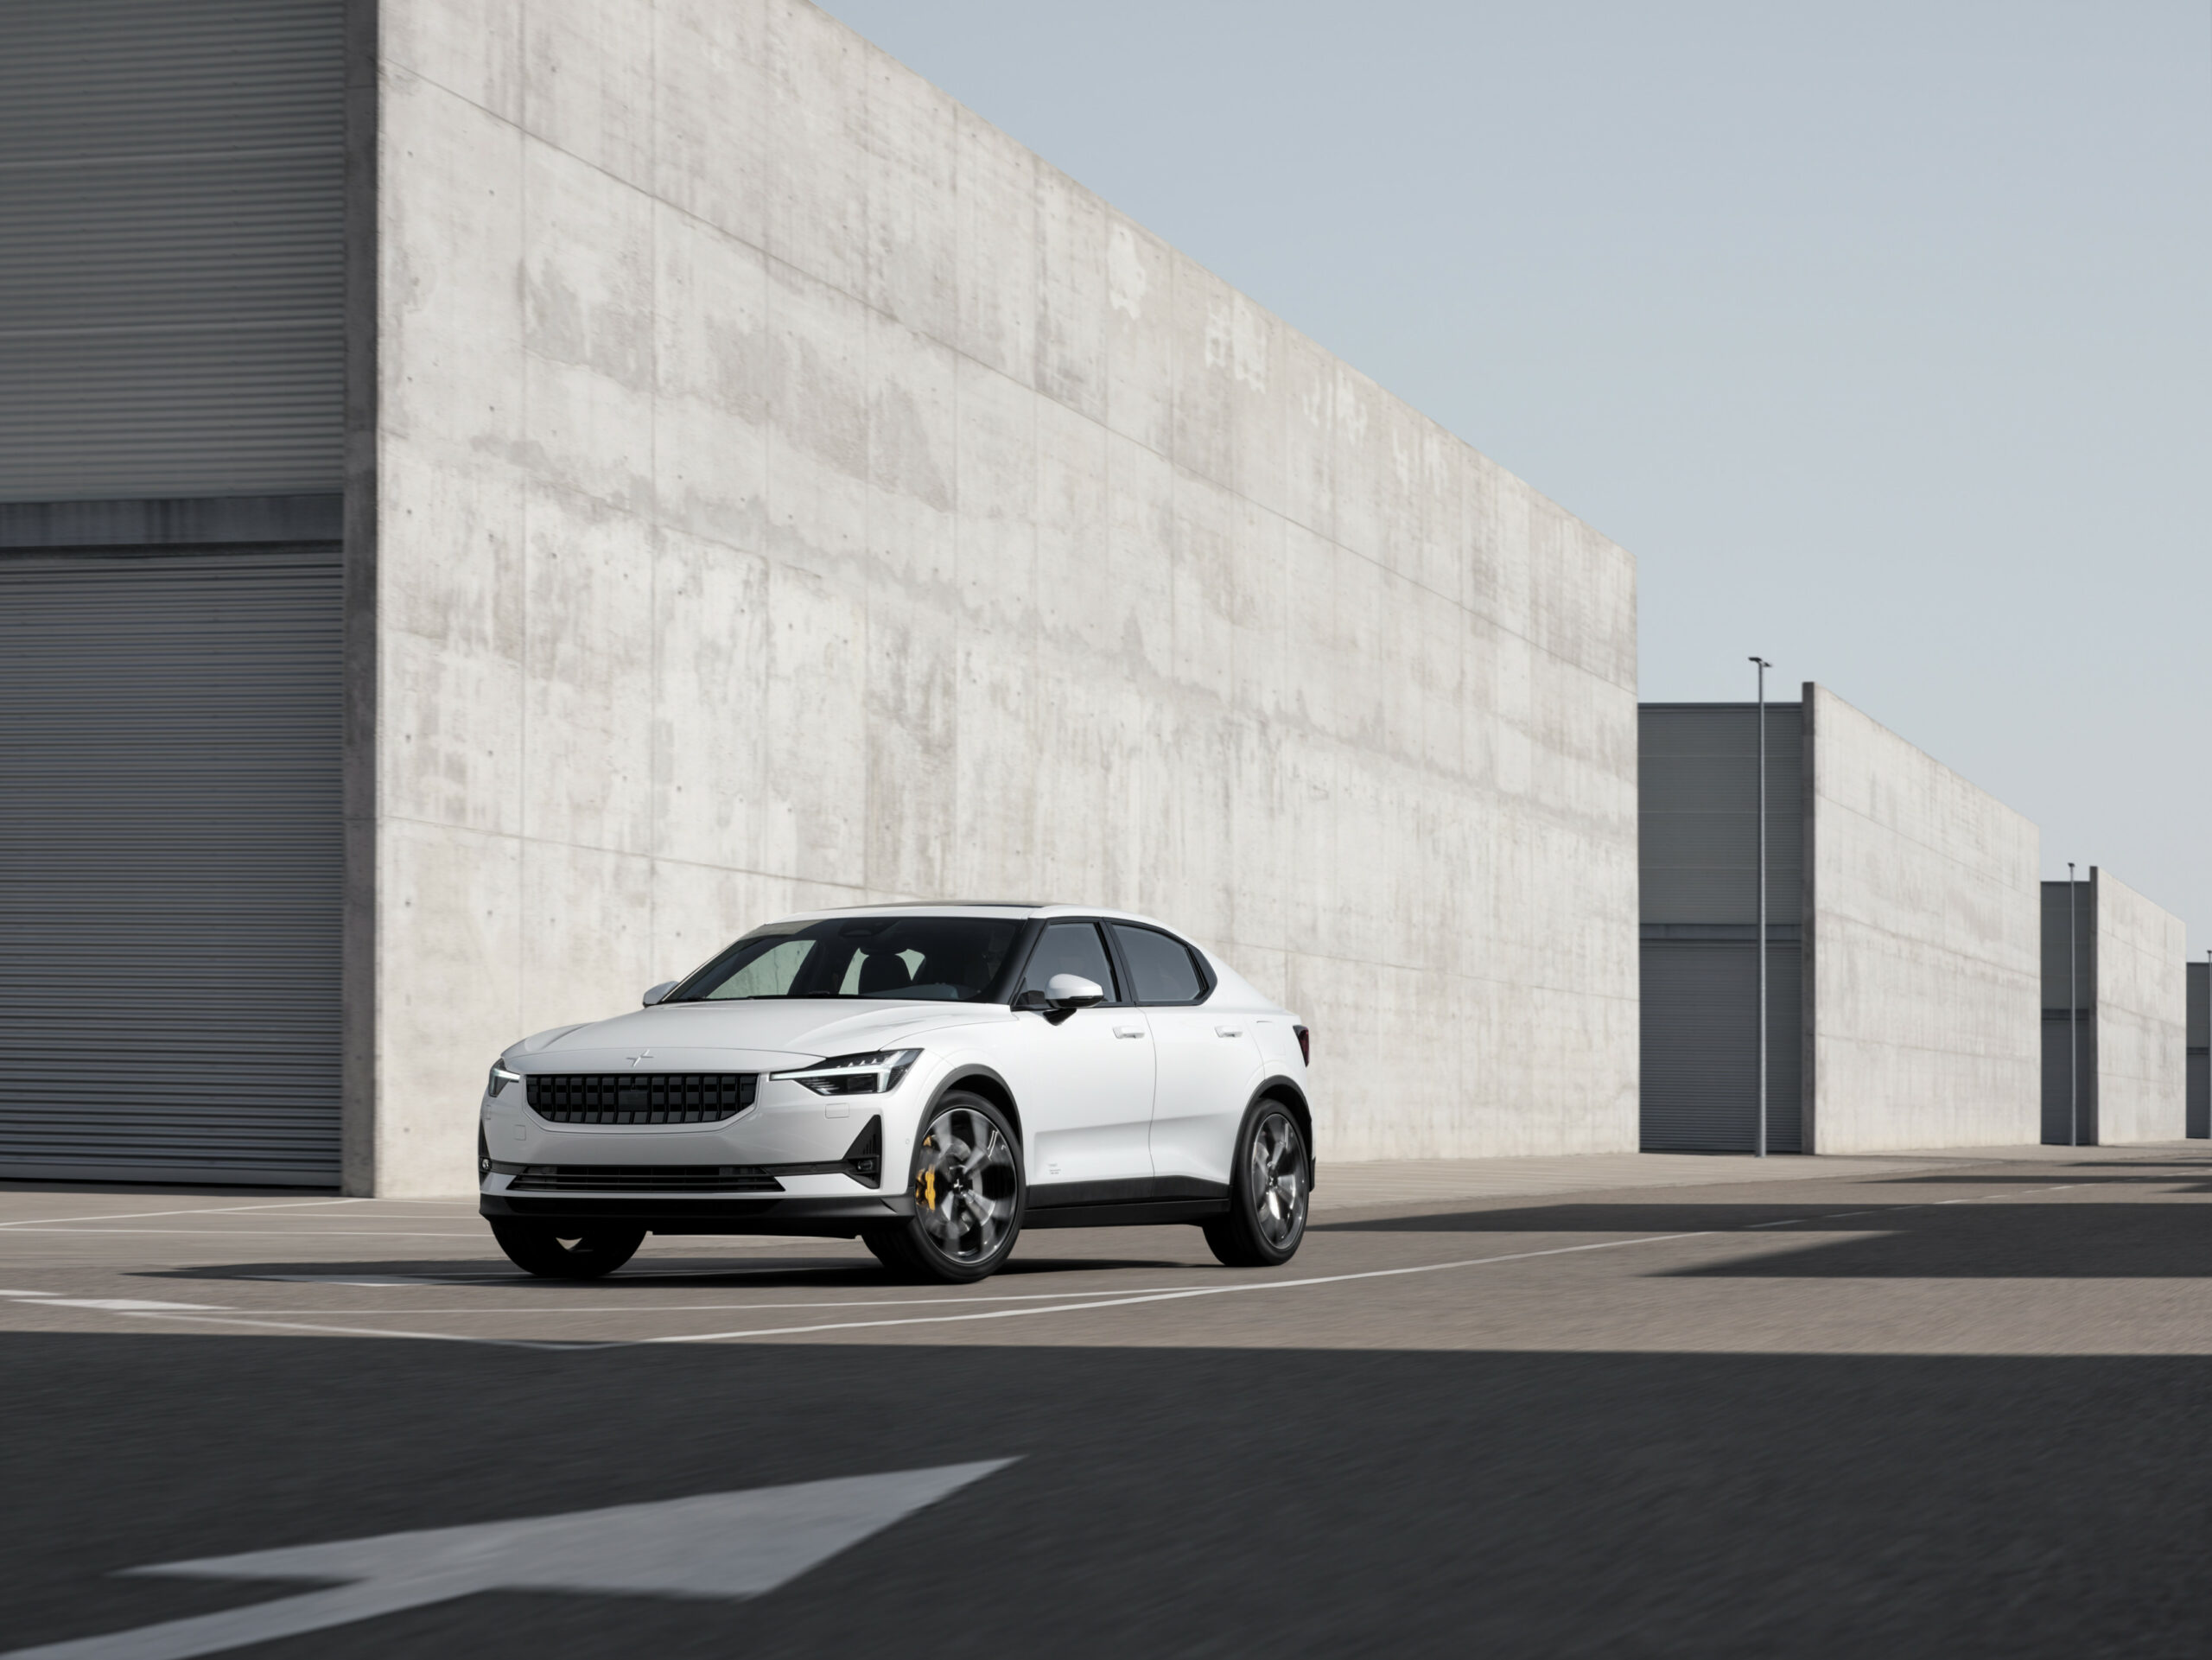 Polestar confirms battery suppliers for its electric performance cars